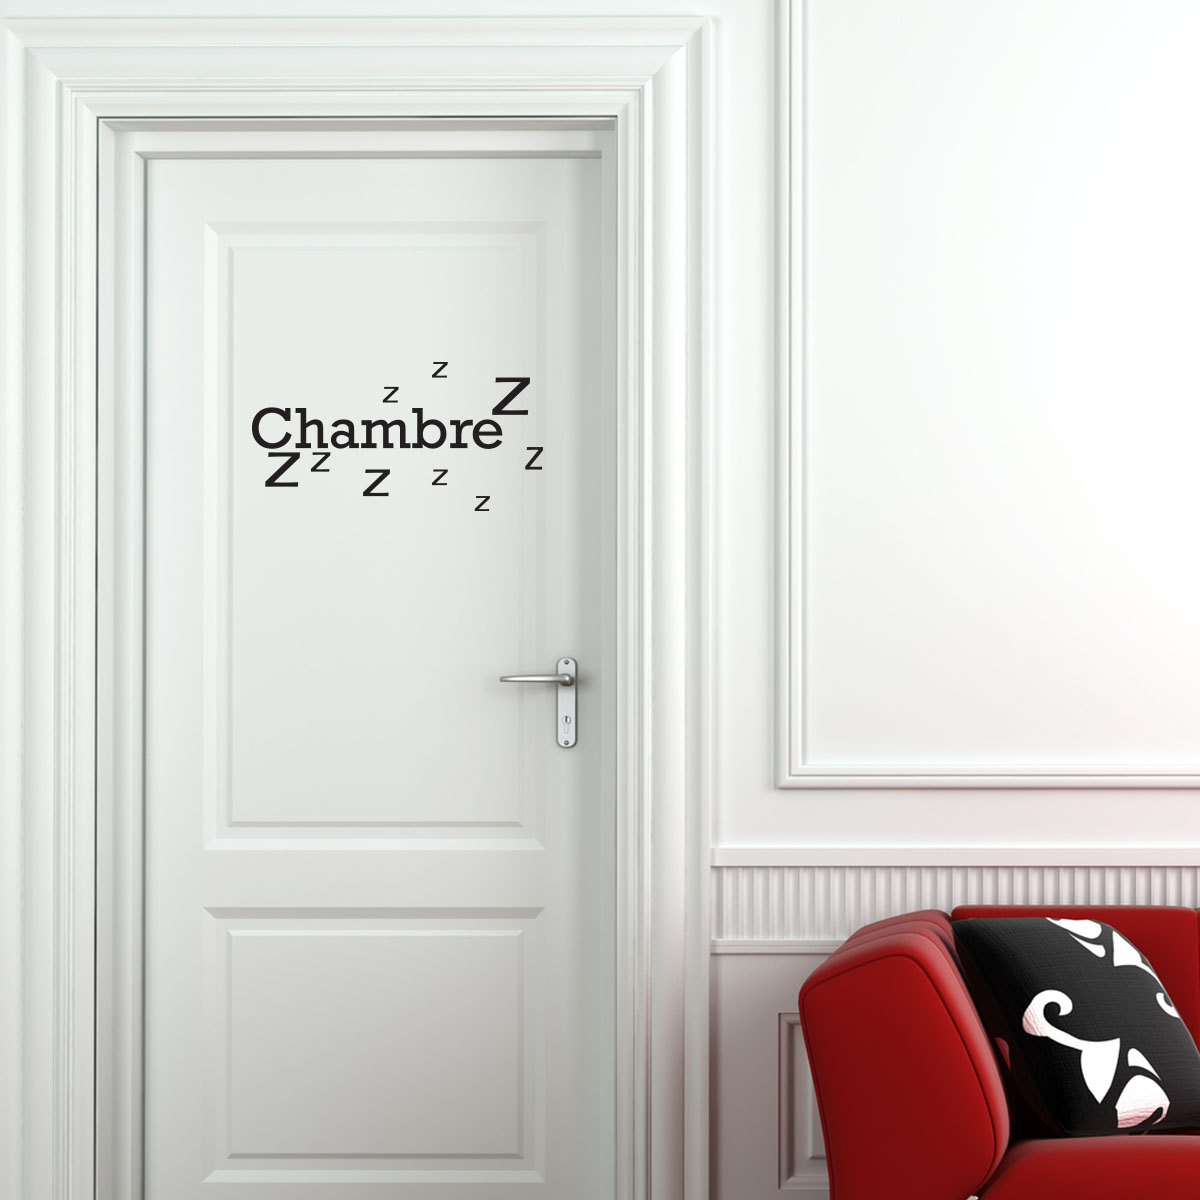 sticker porte chambre zzz stickers chambre texte. Black Bedroom Furniture Sets. Home Design Ideas